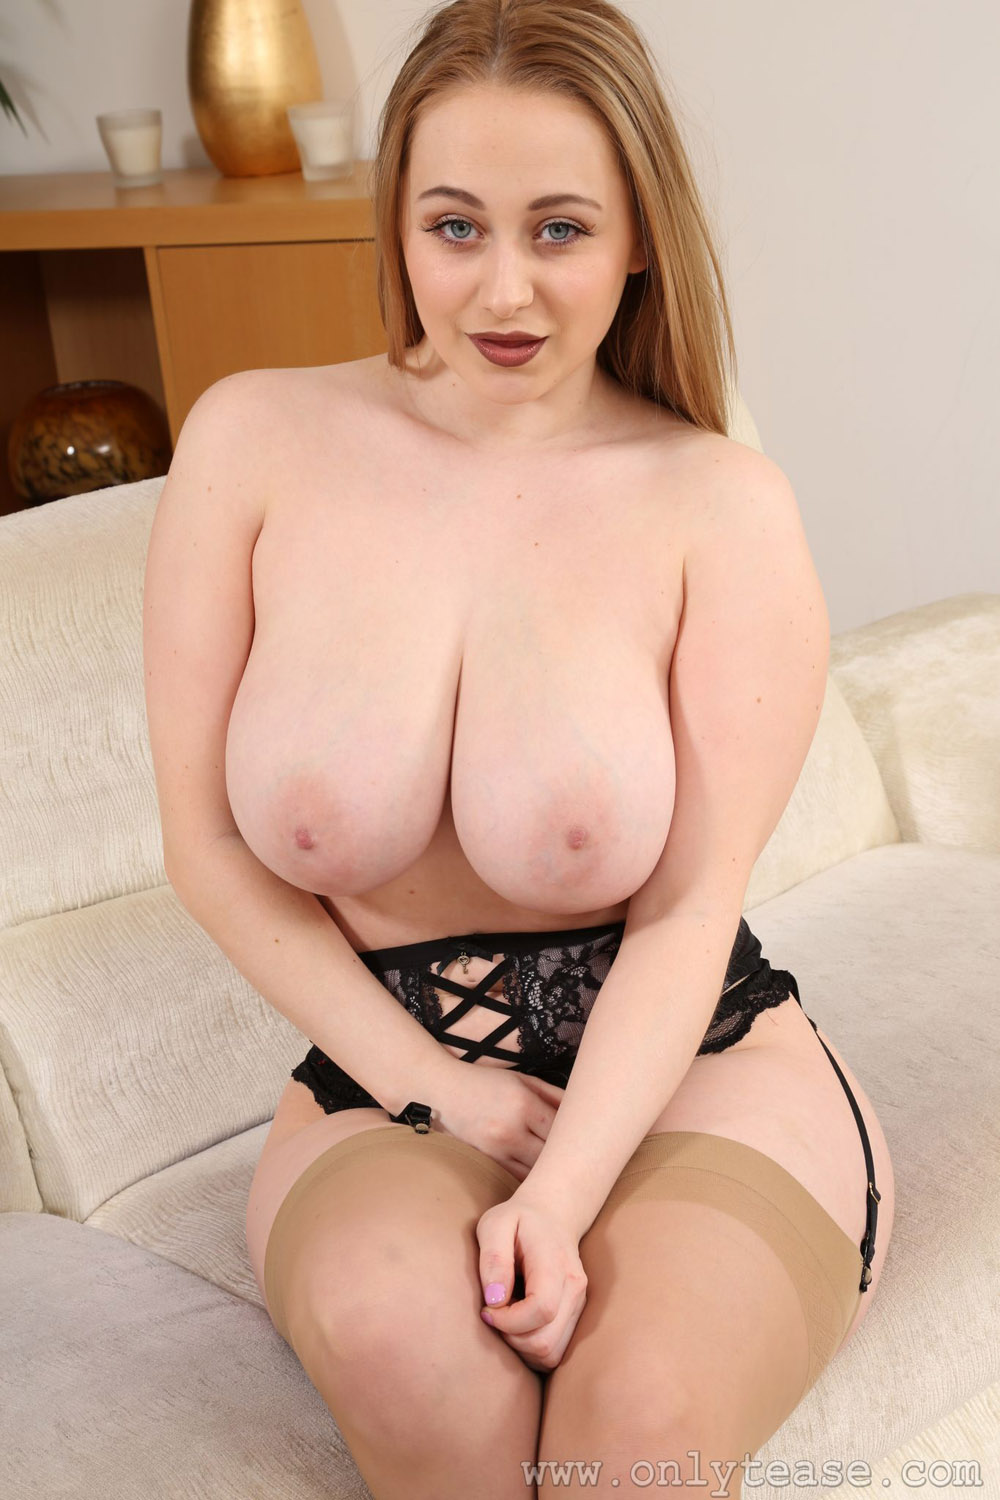 Porn curvy modeling nude are not